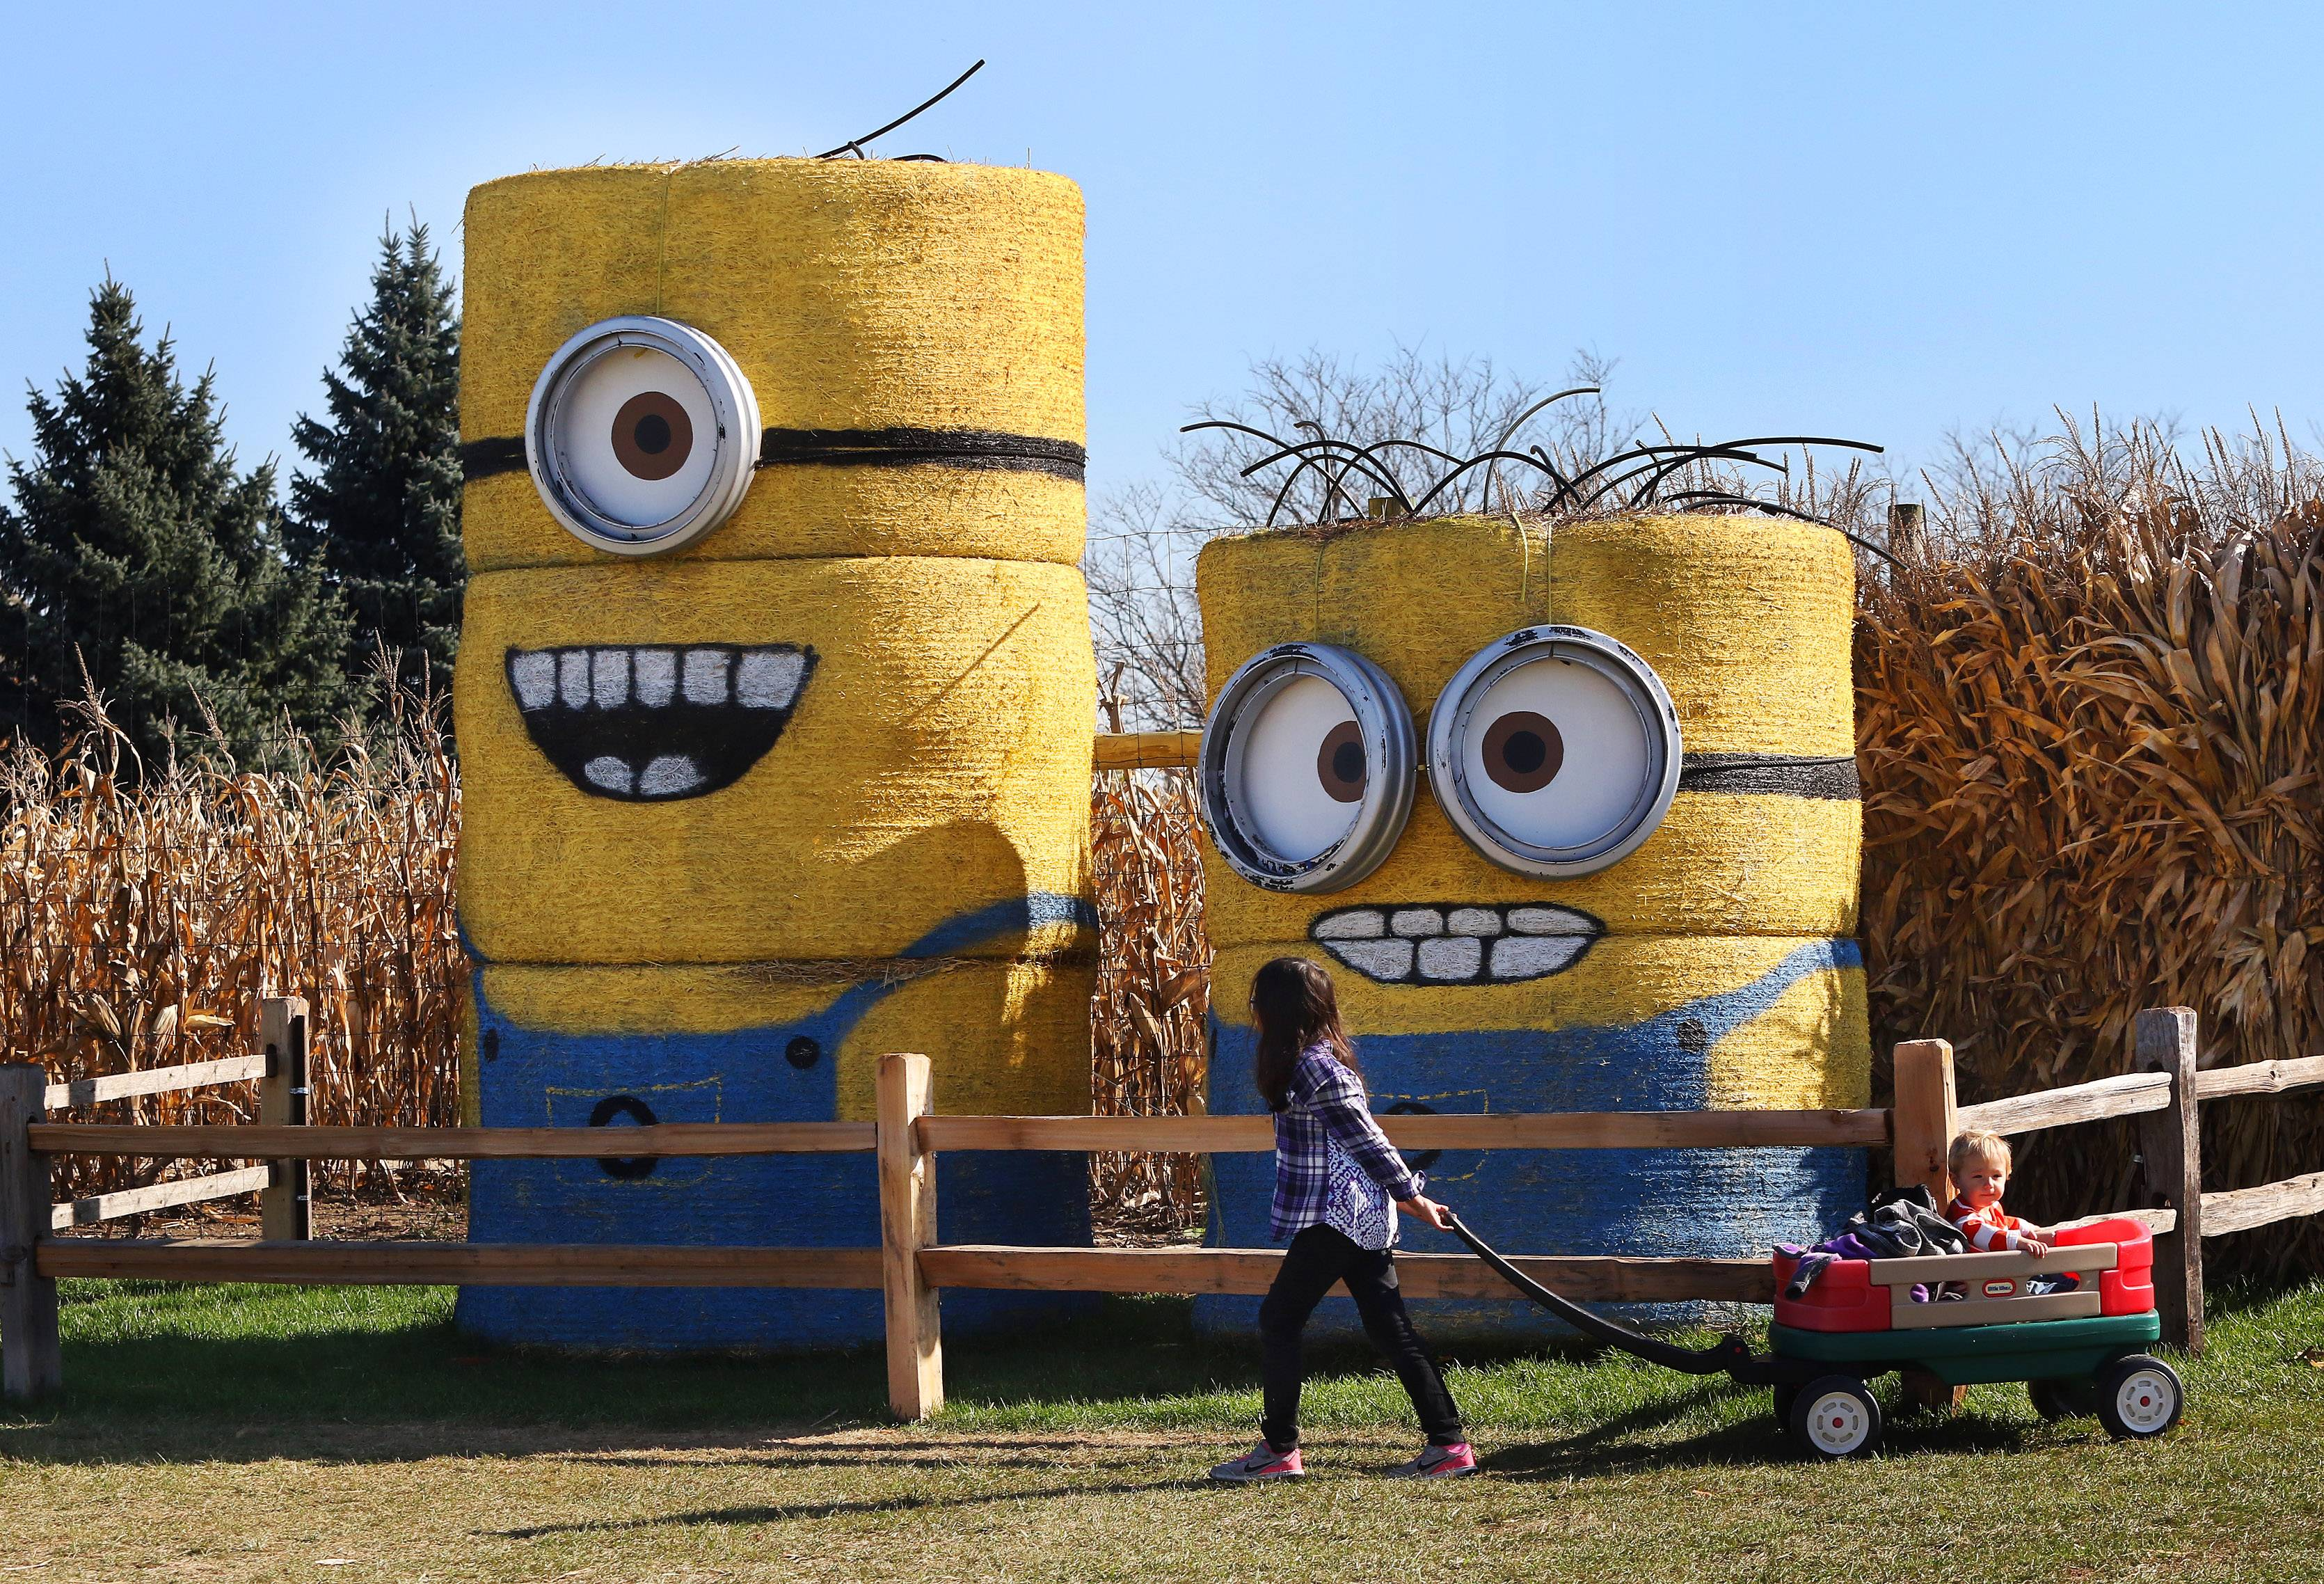 Sophia Boun, 8, of Hoffman Estates pulls a wagon carrying one-year-old Benjamin Innocenti of Lake Zurich past giant Minions made of hay during Fall Festival at Goebbert's Farm & Garden Center in South Barrington on Sunday.